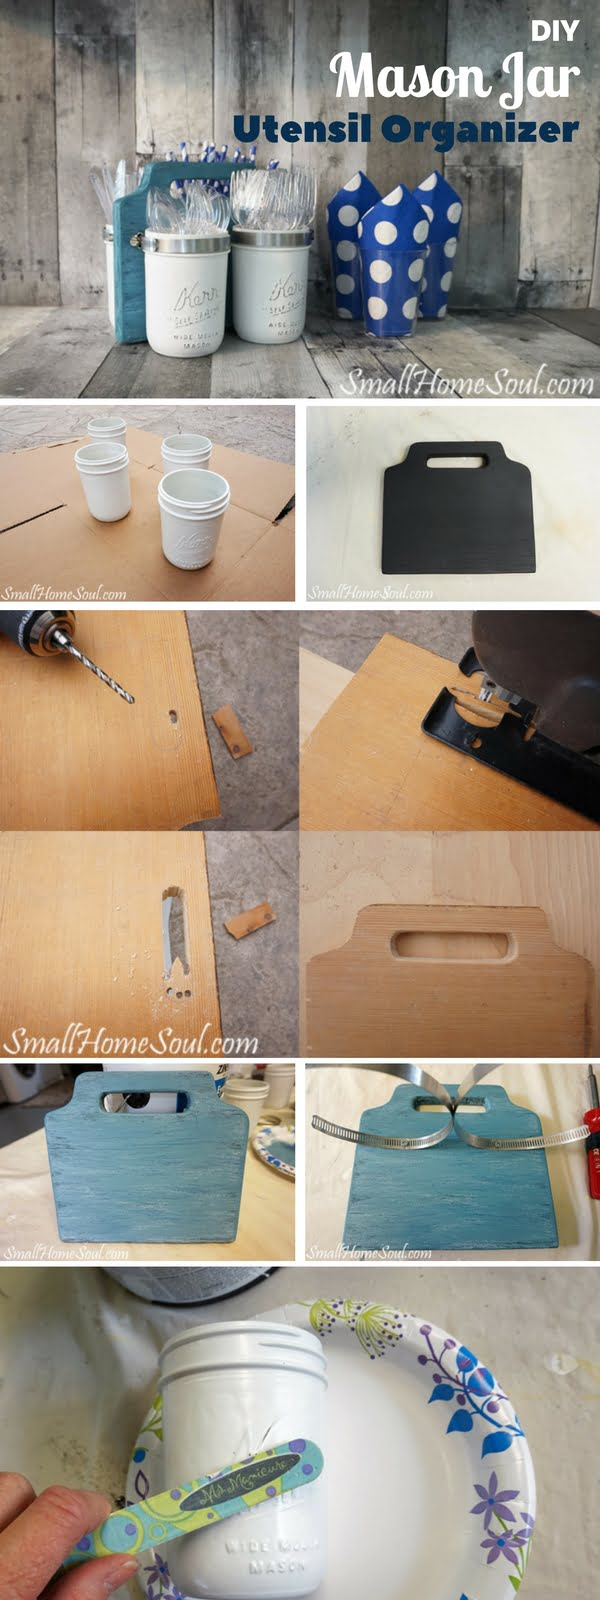 How to make  Mason Jar Utensil Organizer